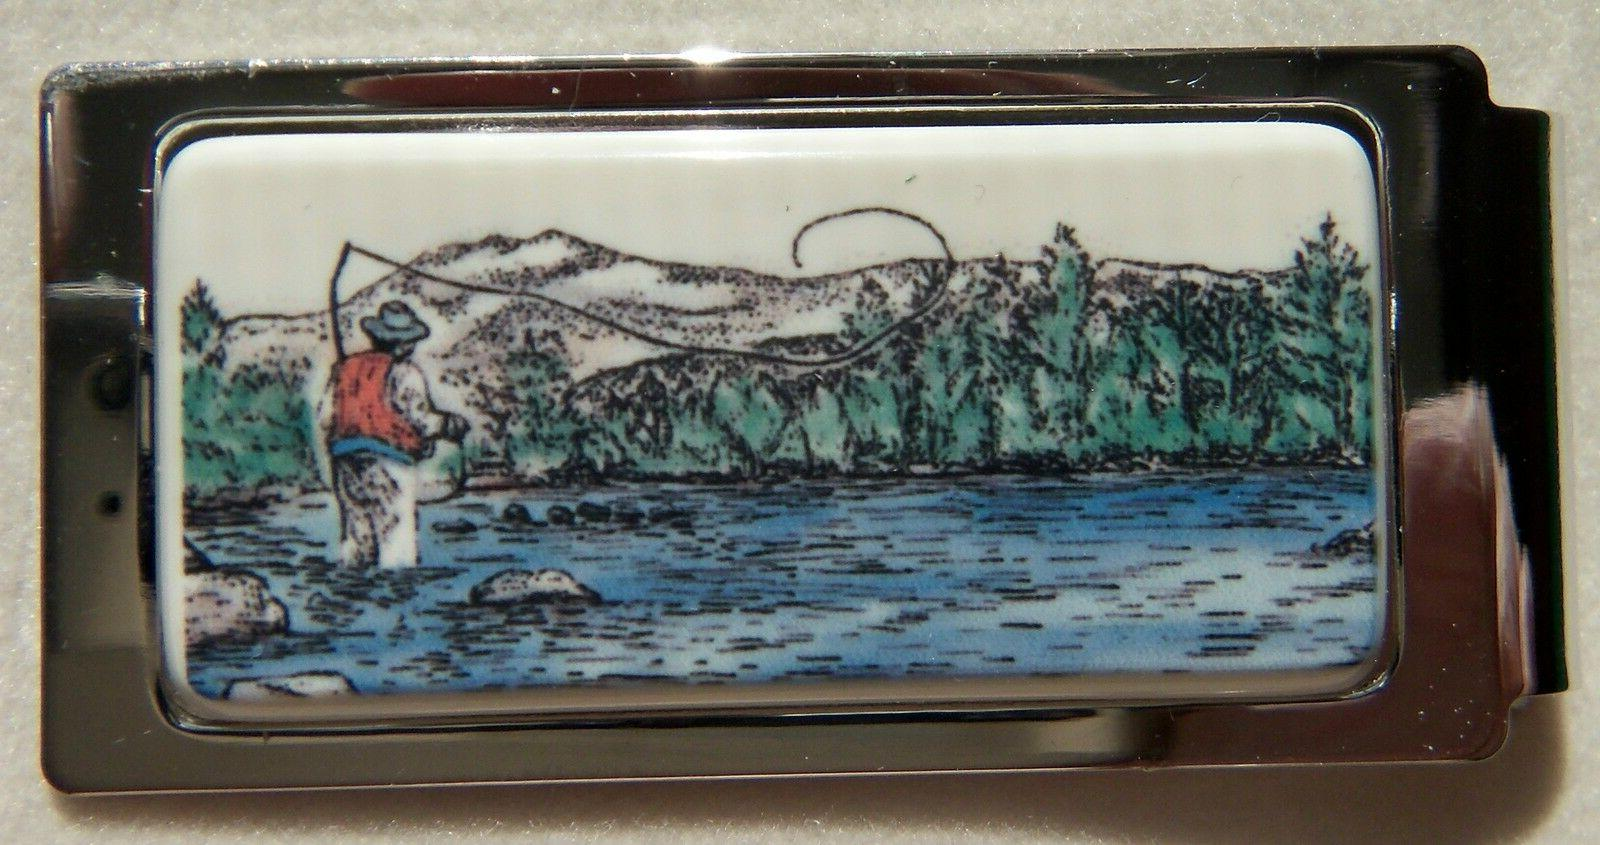 Money Clip Barlow Photo Reproduction In Color of Fisherman H